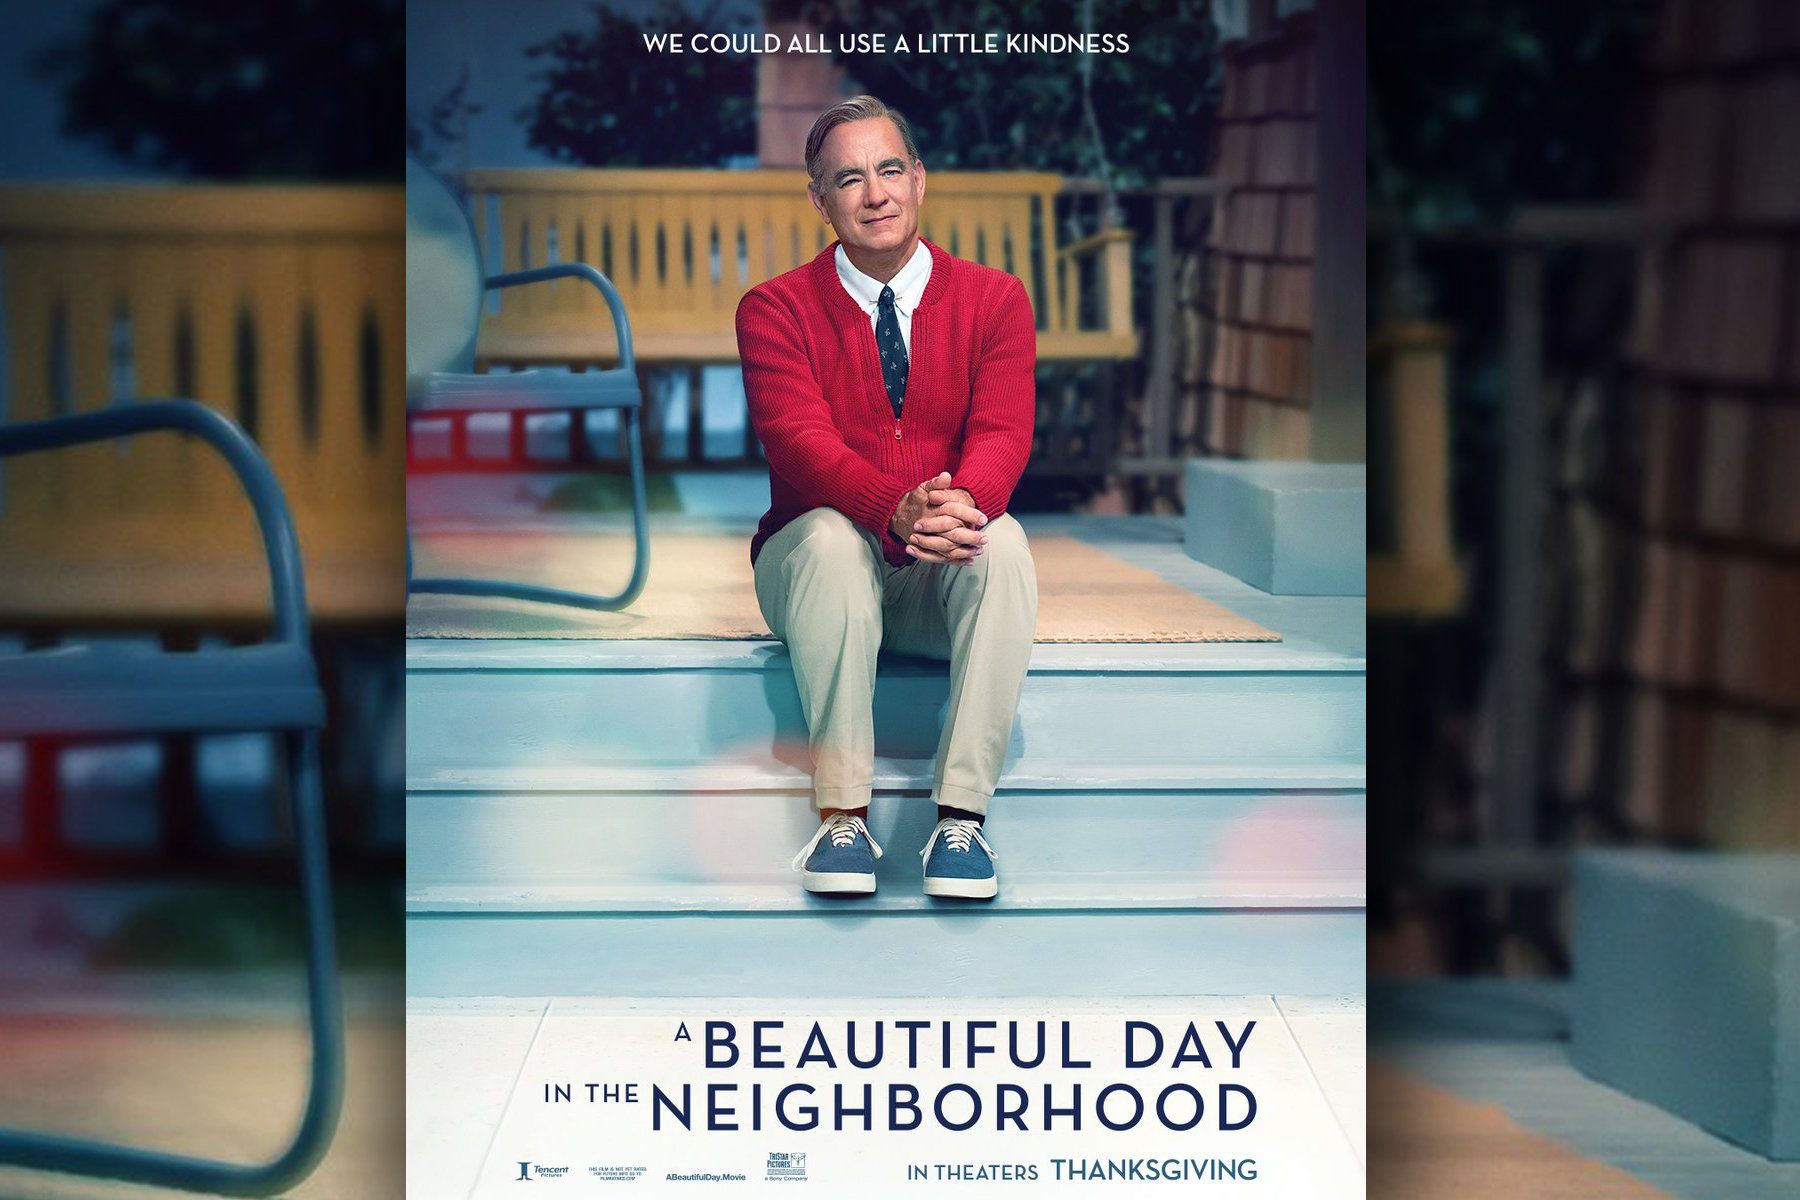 This New Poster For The Mr Rogers Movie Starring Tom Hanks Is Pretty Perfect Ad Age